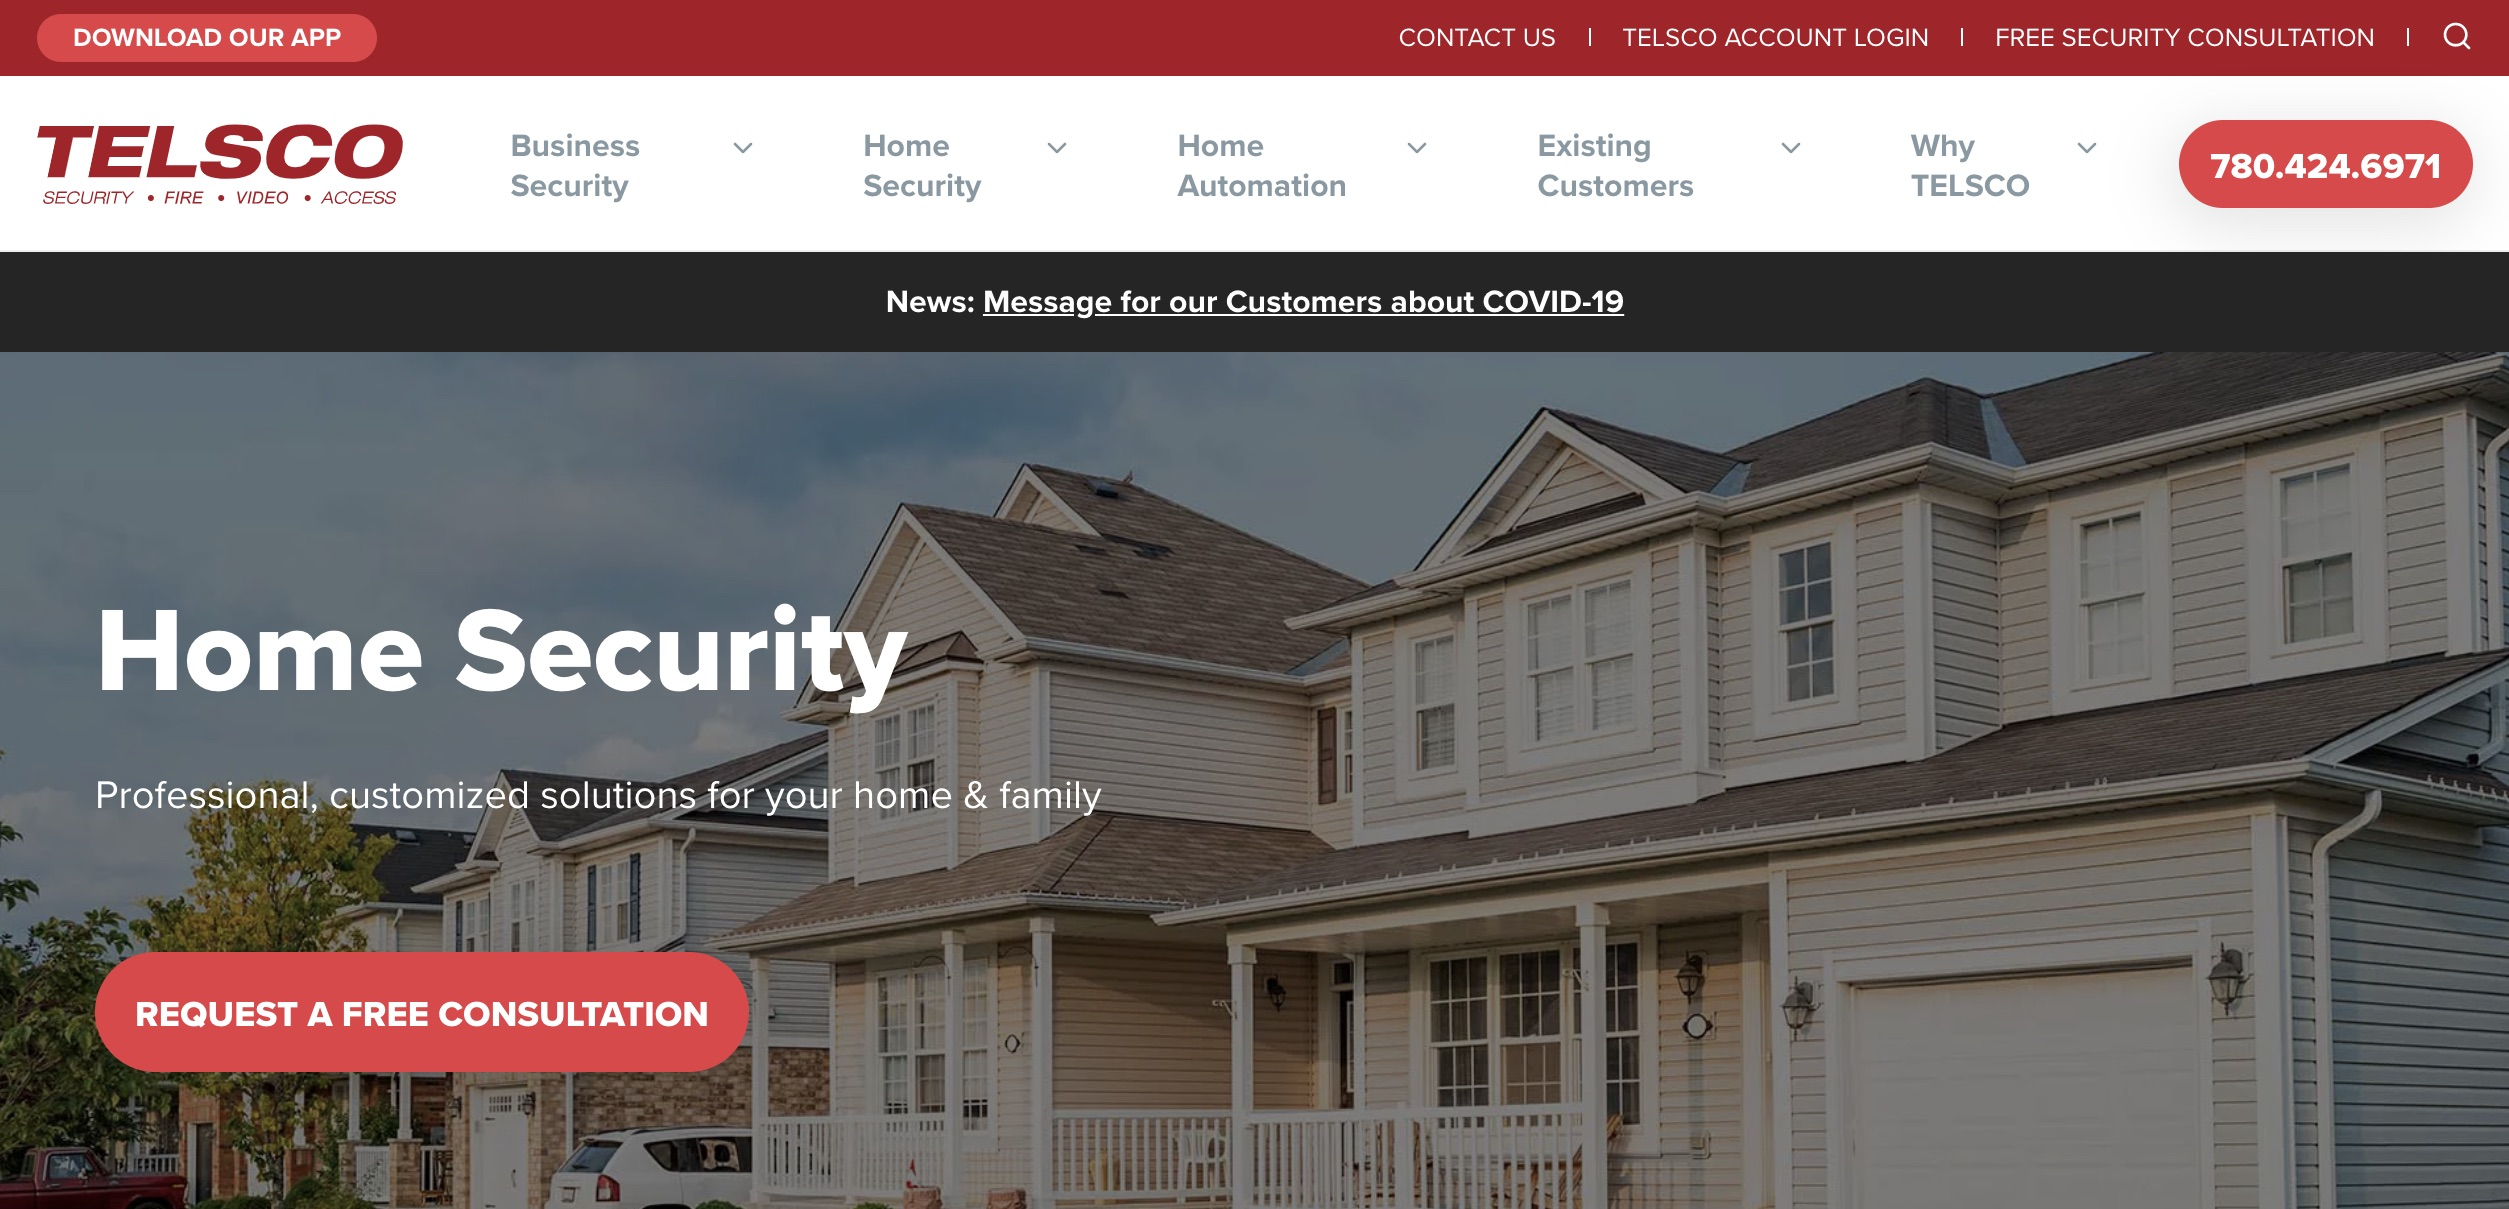 TELSCO Security Systems